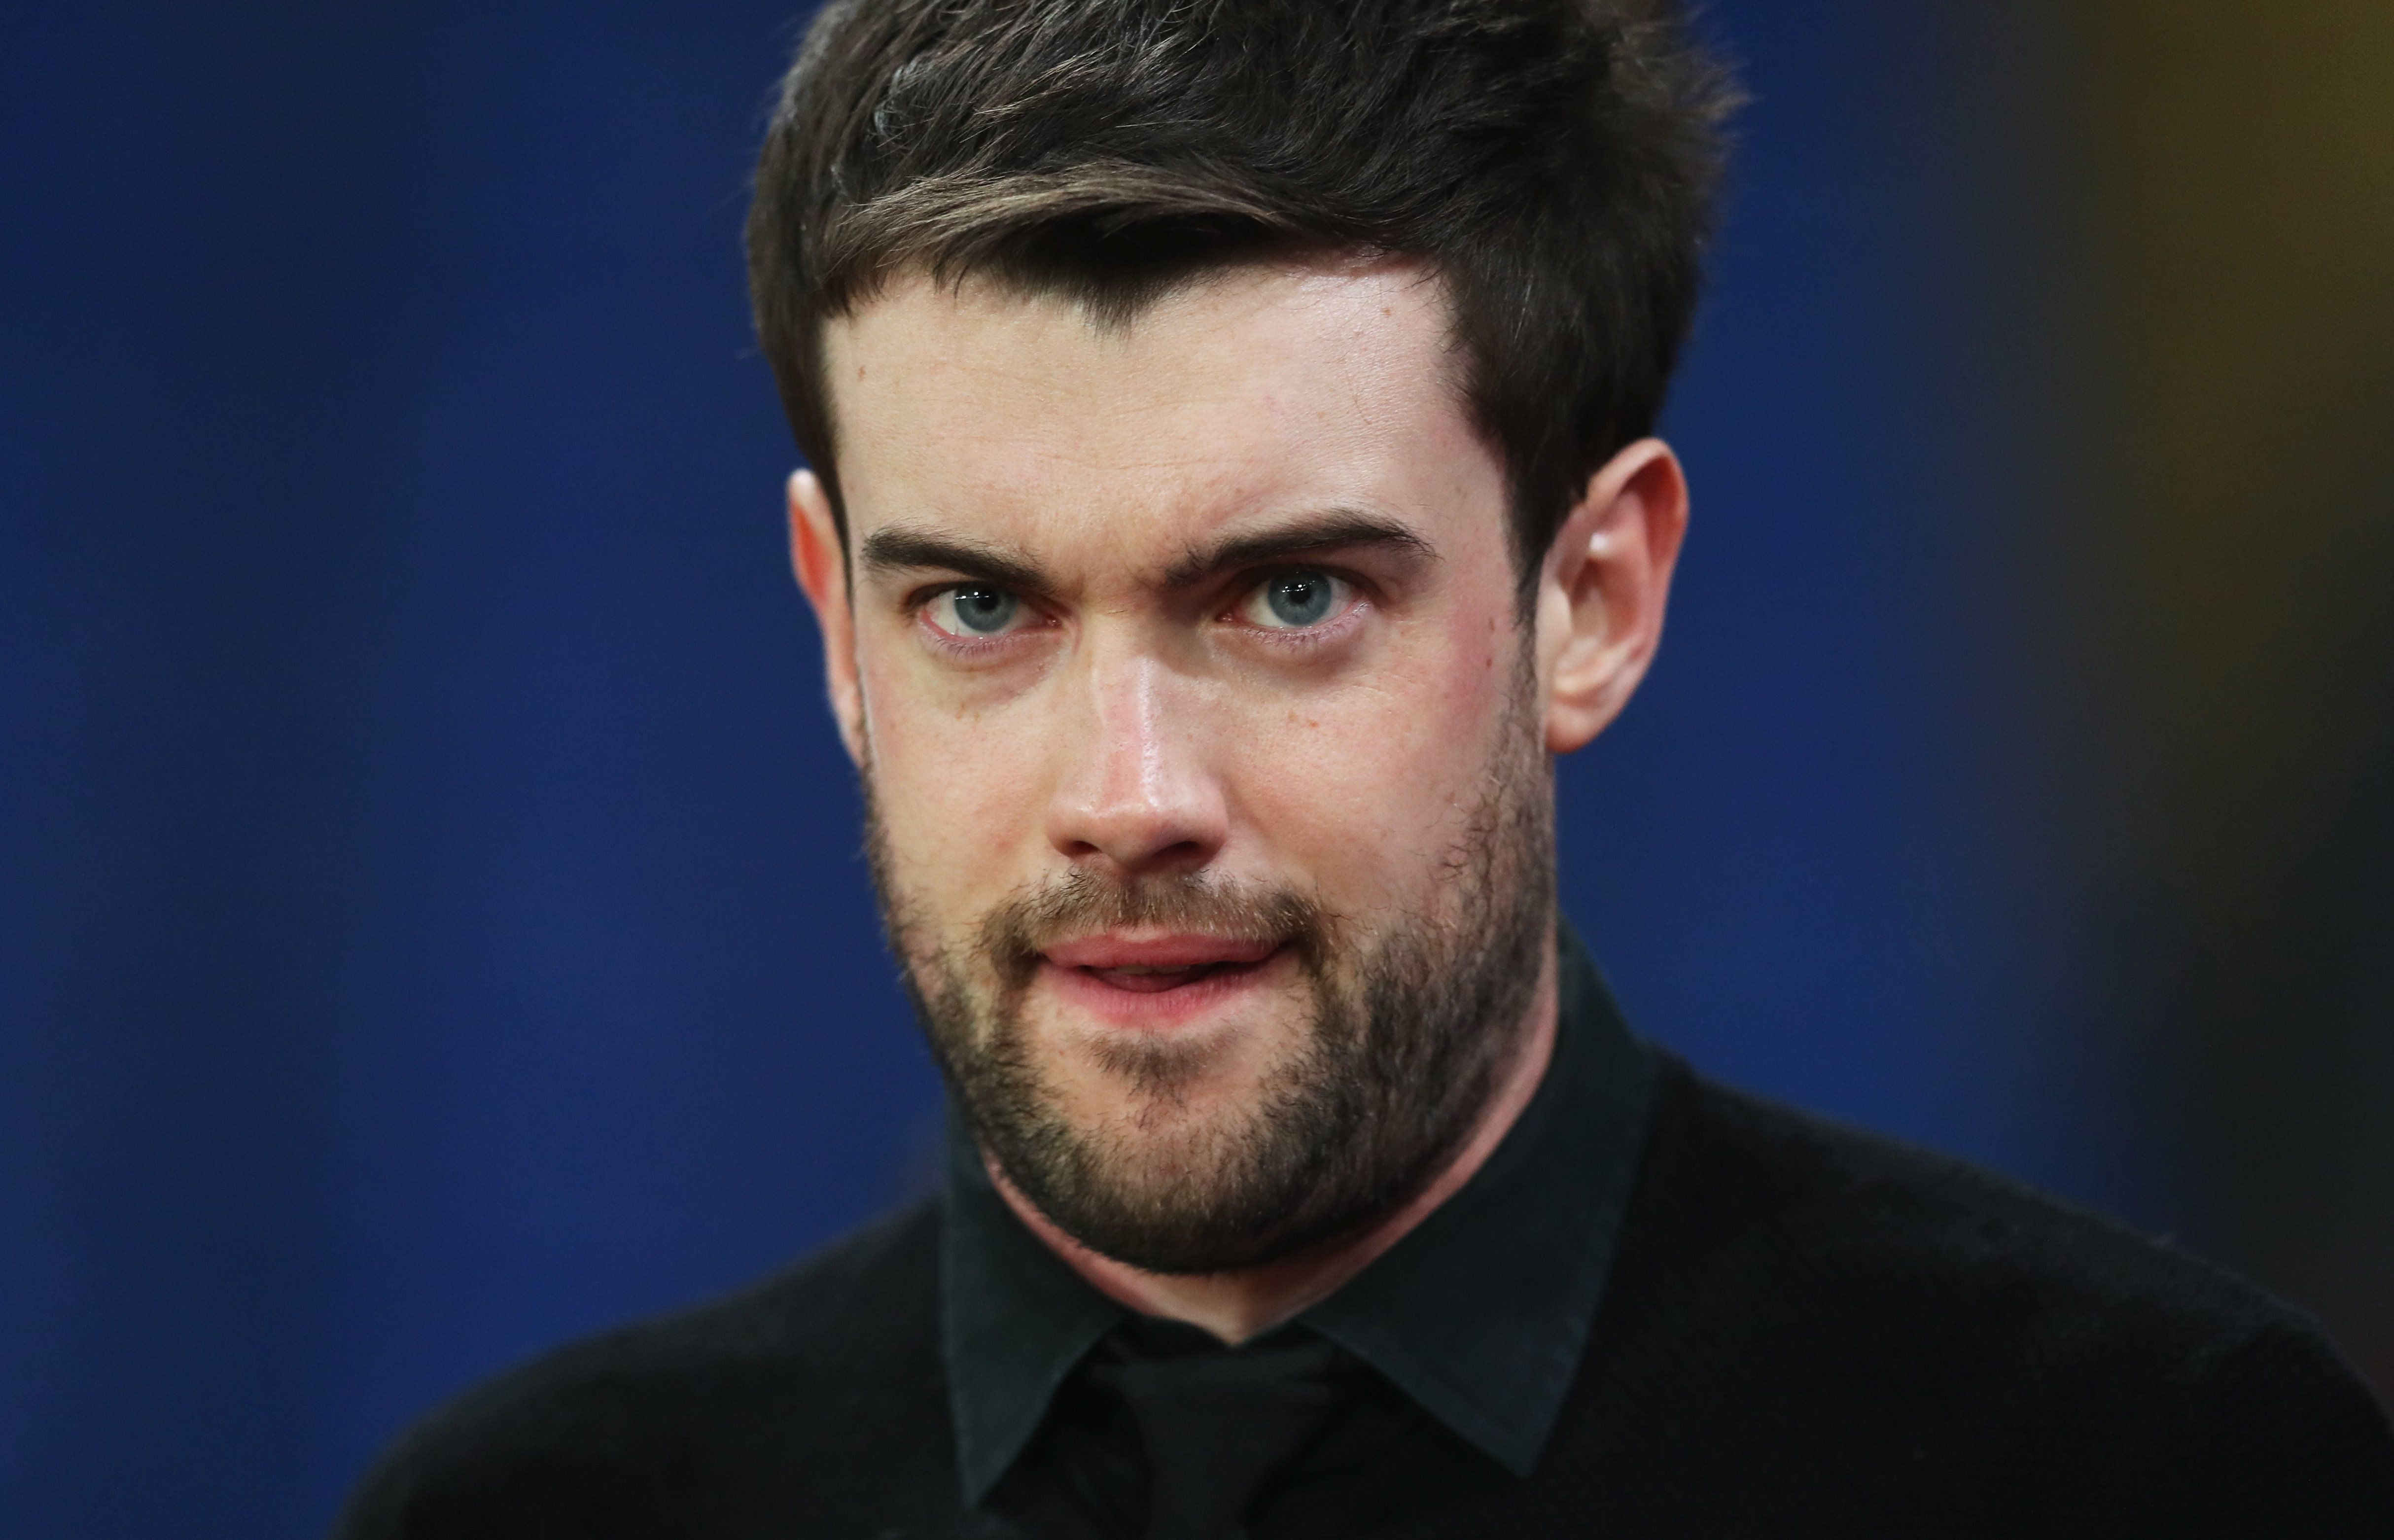 LONDON, ENGLAND - DECEMBER 28:  Comedian and Arsenal fan Jack Whitehall looks on prior to the Premier League match between Crystal Palace and Arsenal at Selhurst Park on December 28, 2017 in London, England.  (Photo by Dan Istitene/Getty Images)